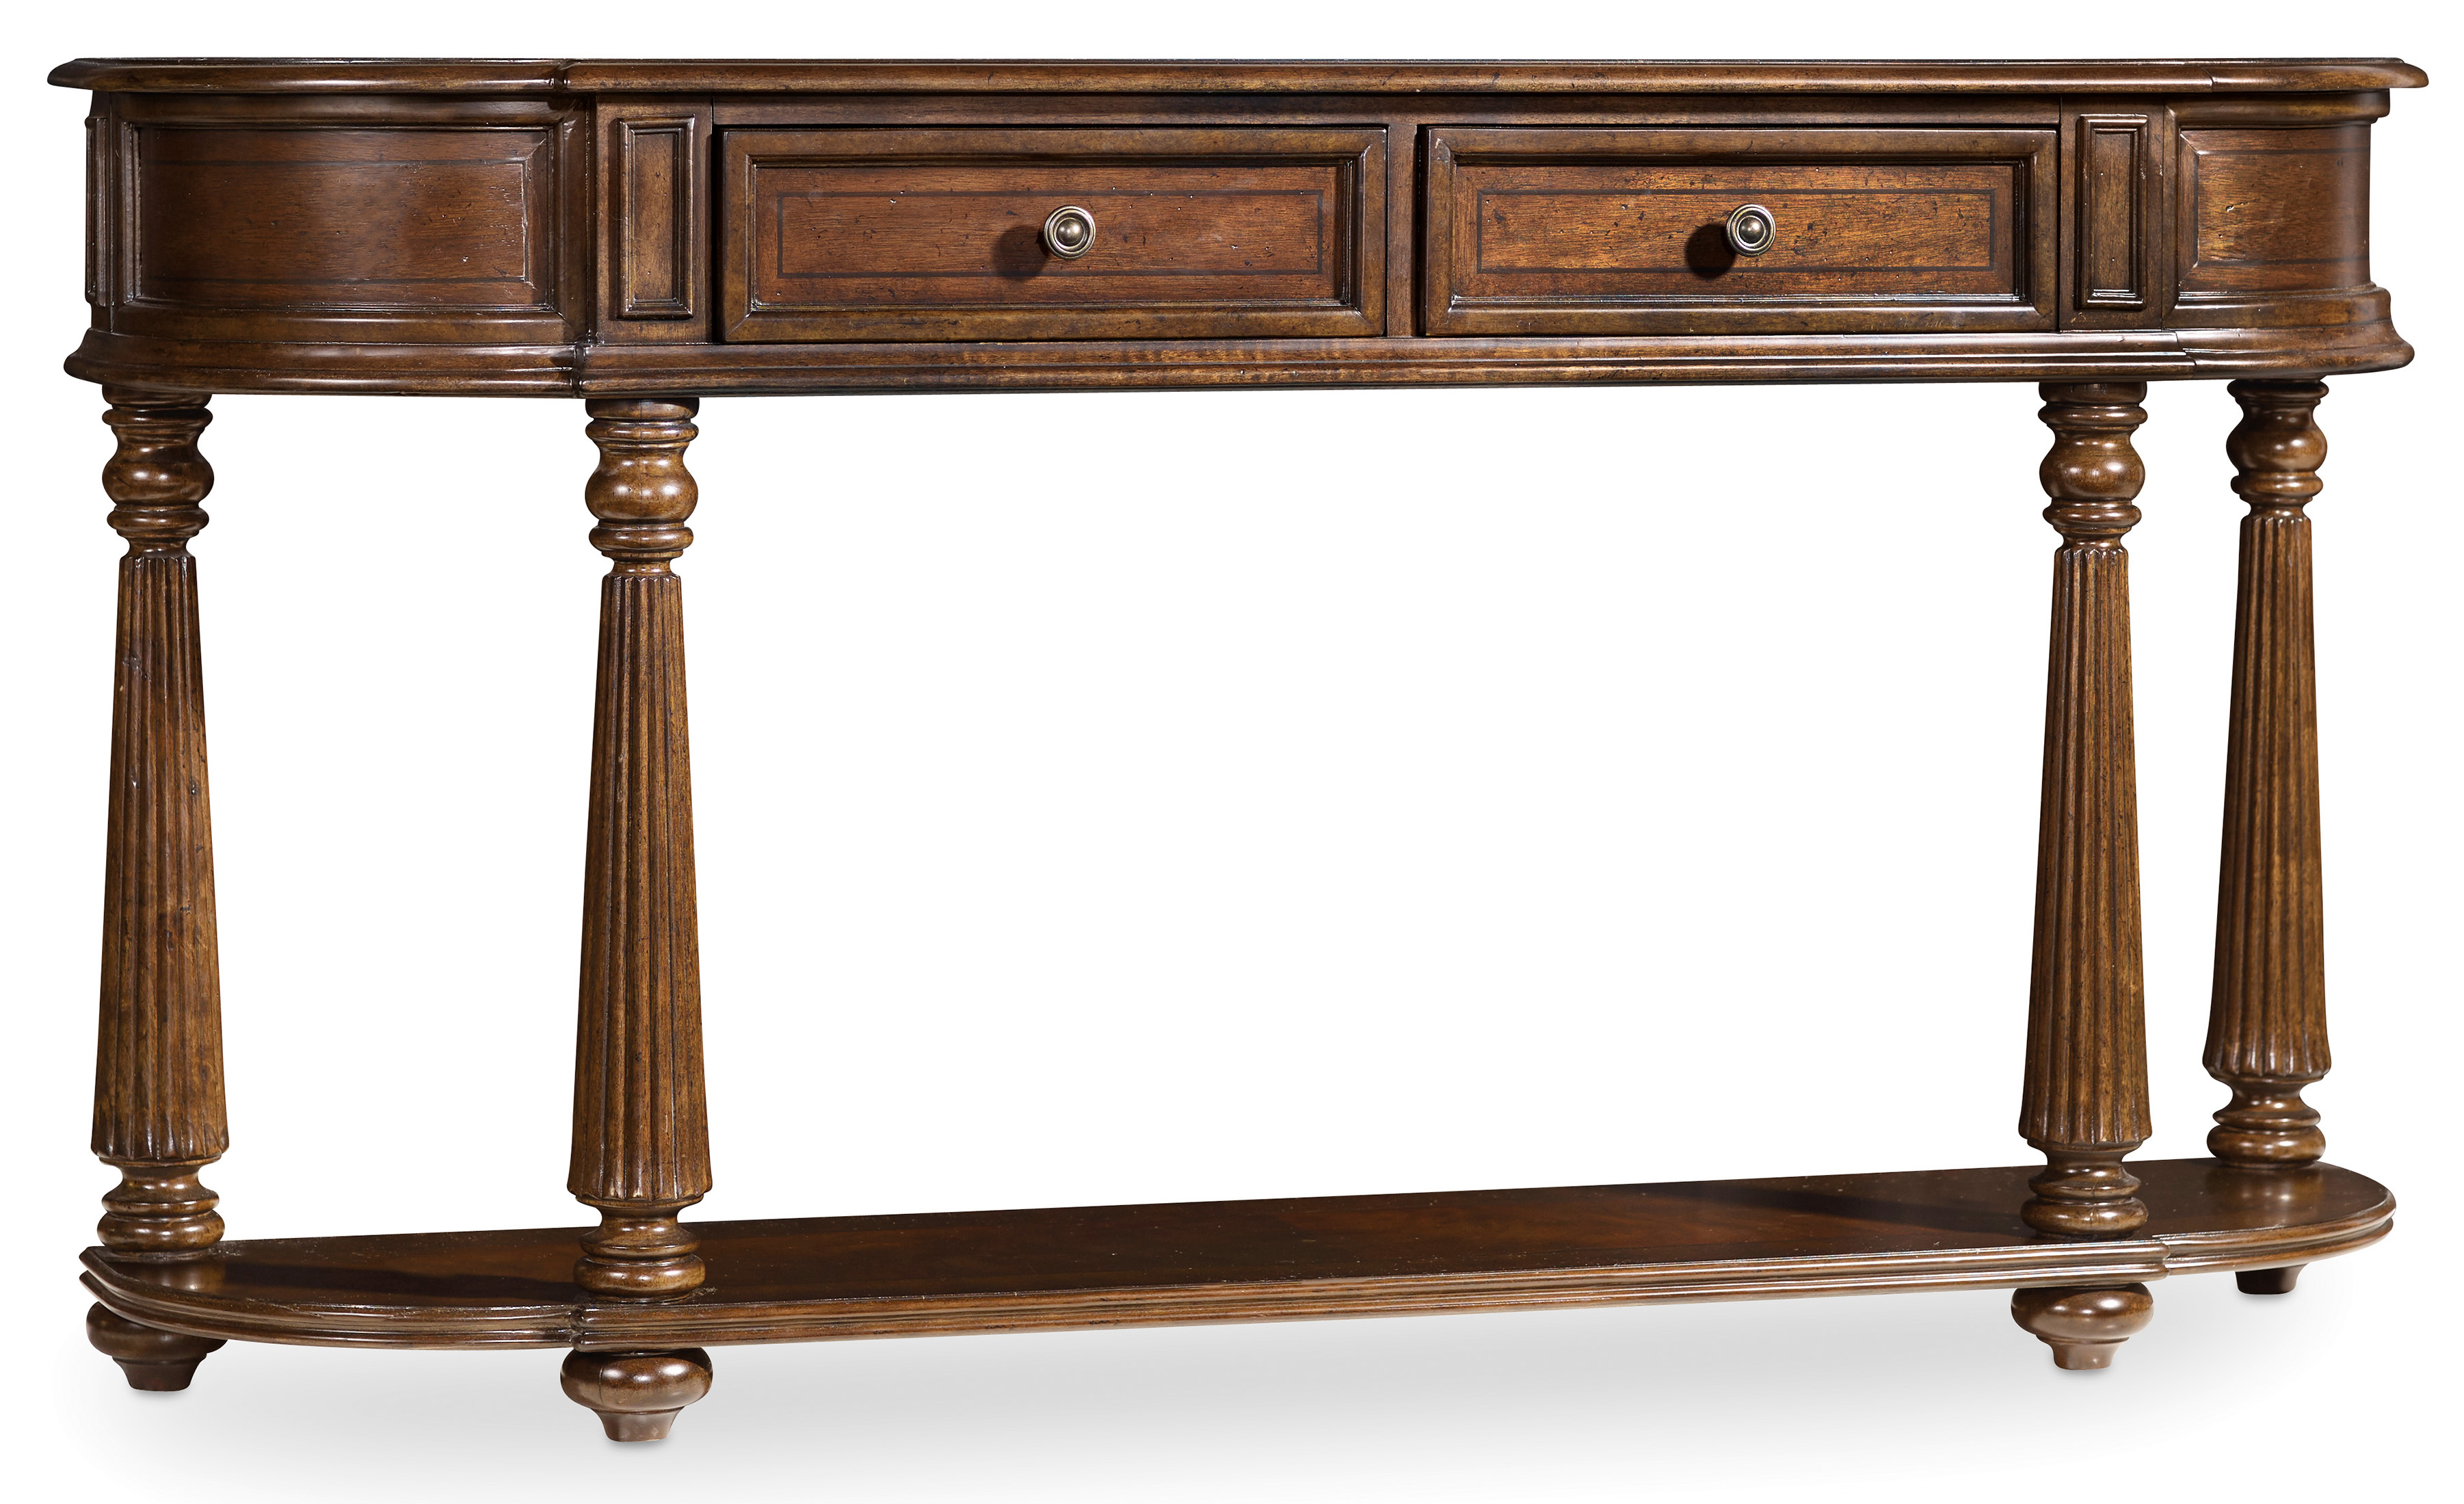 Hooker Furniture Leesburg Demilune Hall Console - Item Number: 5381-80151